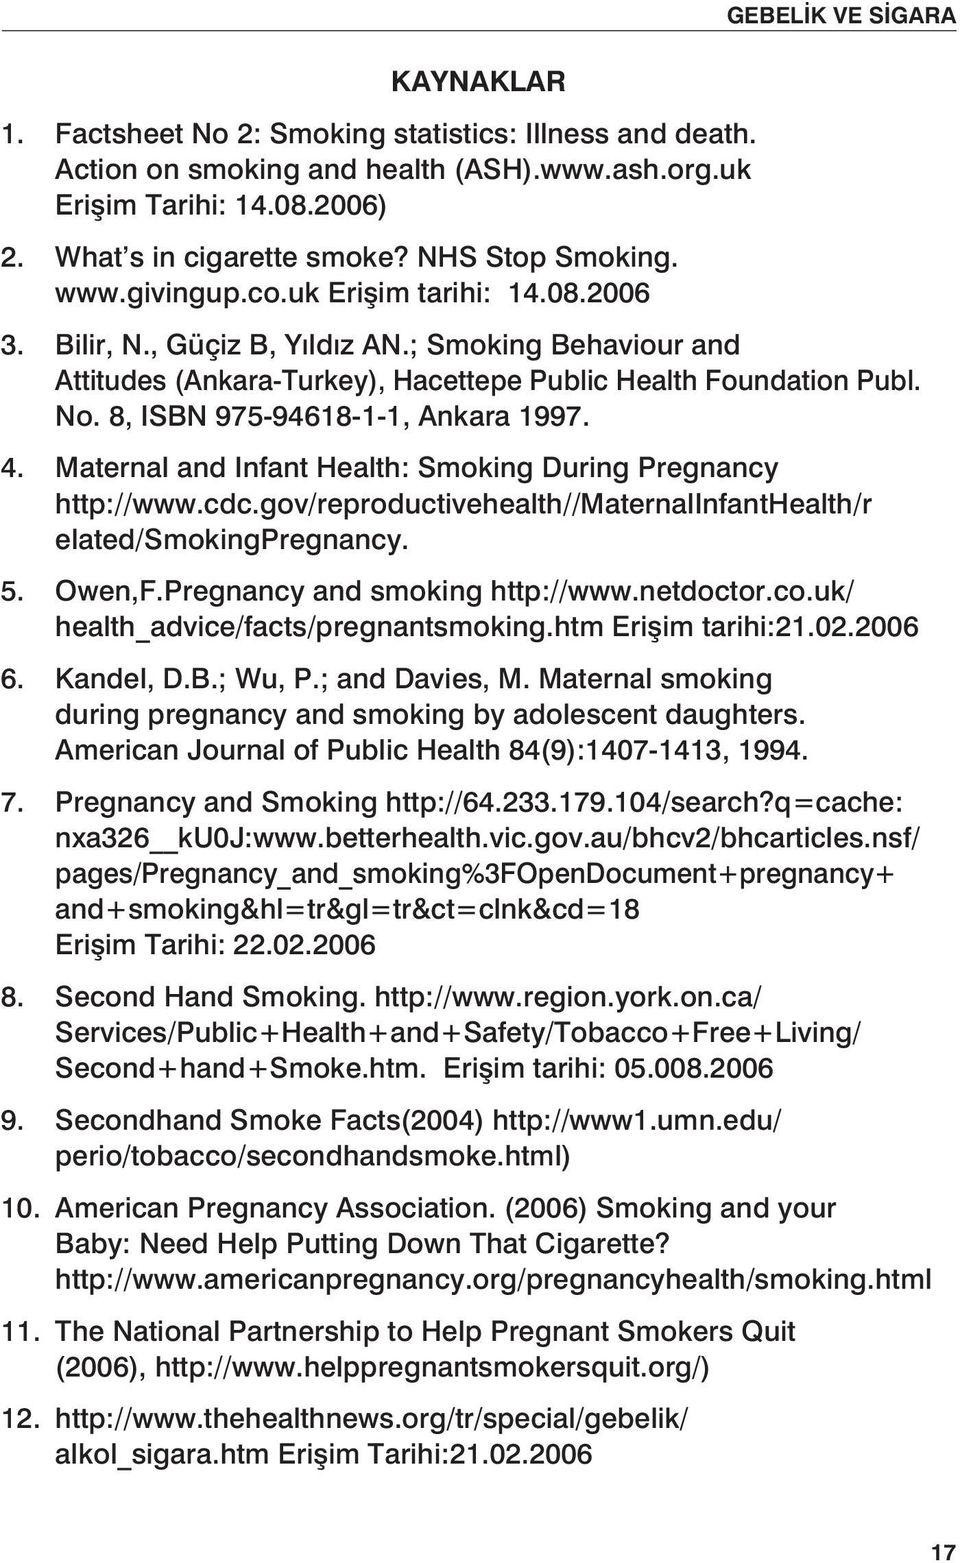 8, ISBN 975-94618-1-1, Ankara 1997. 4. Maternal and Infant Health: Smoking During Pregnancy http://www.cdc.gov/reproductivehealth//maternalinfanthealth/r elated/smokingpregnancy. 5. Owen,F.